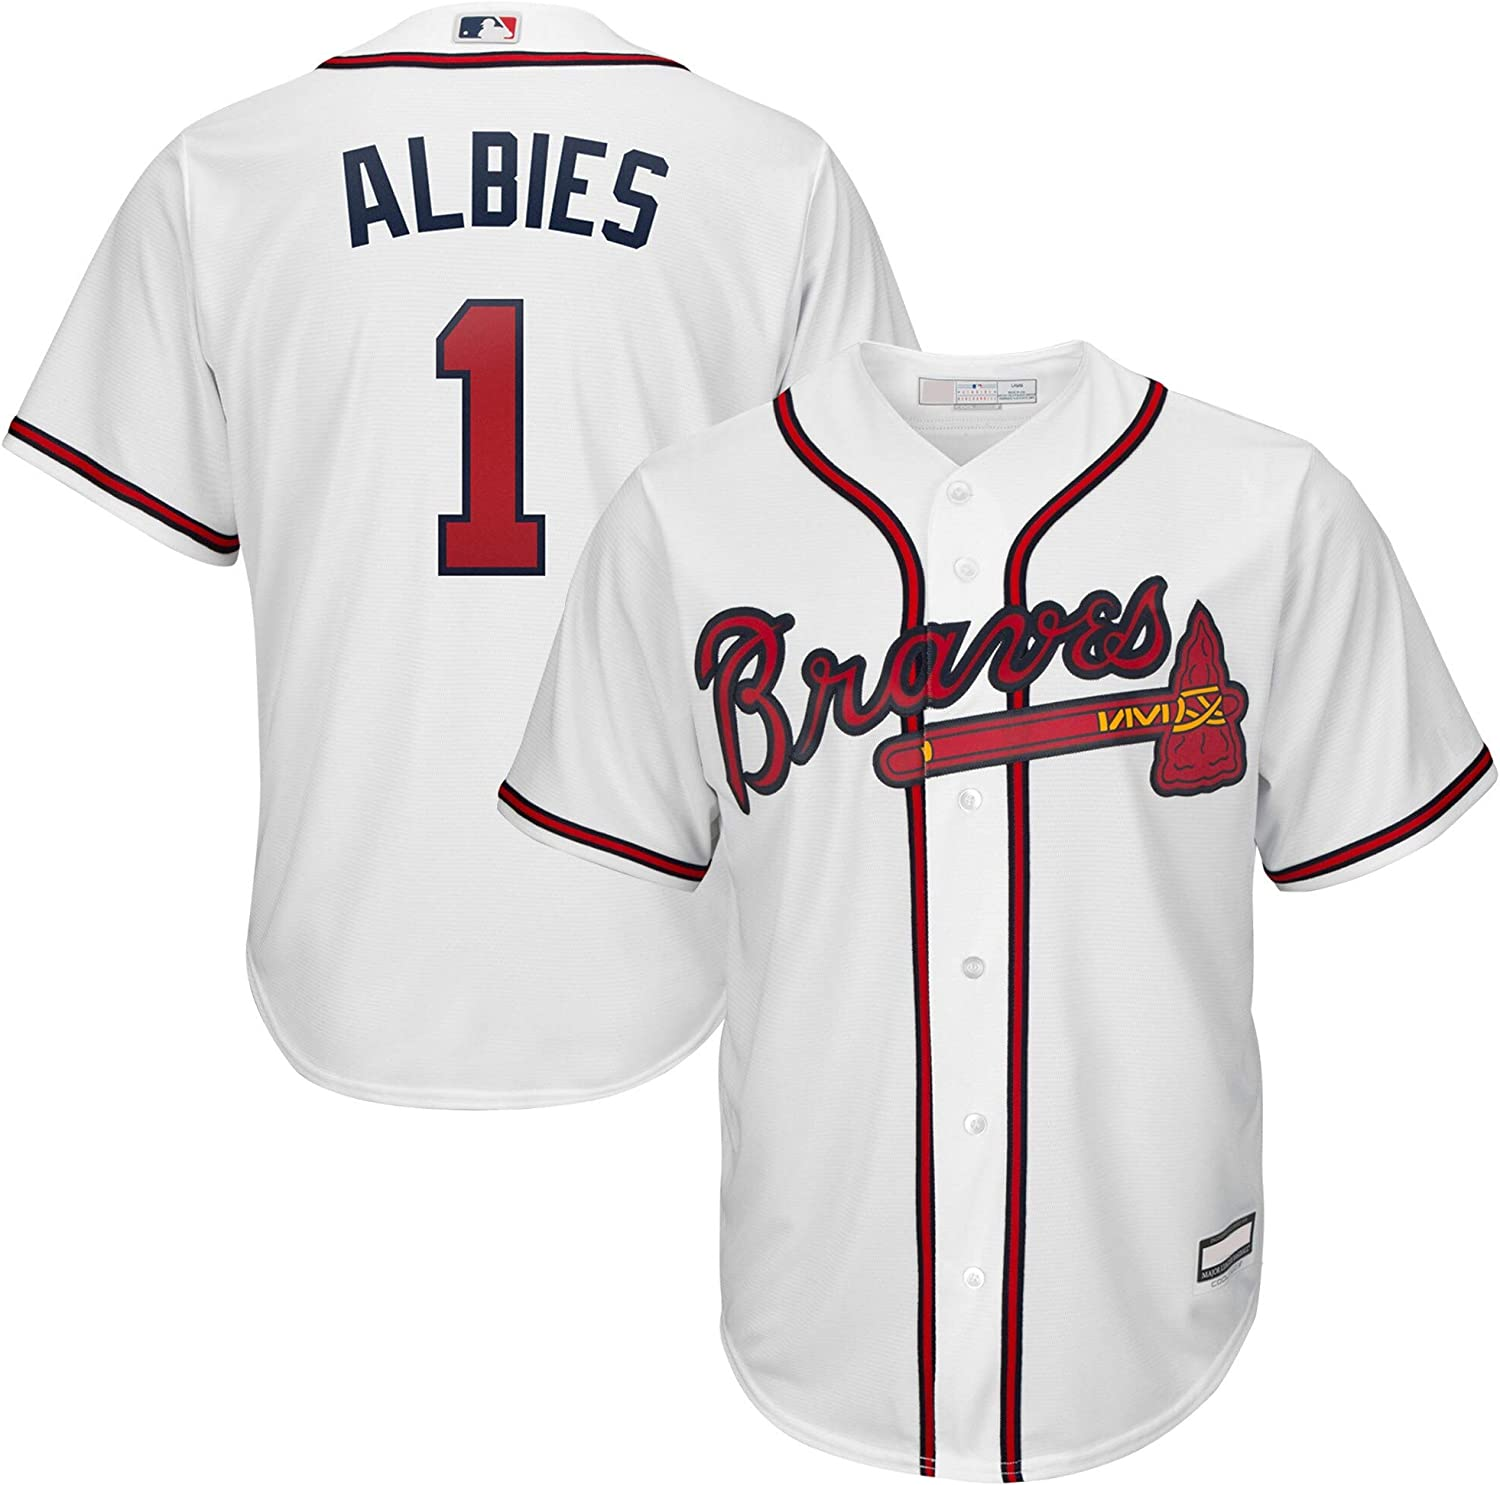 Outerstuff online shopping Ozzie Albies Atlanta Time sale Braves 8-20 Youth Boys Playe MLB